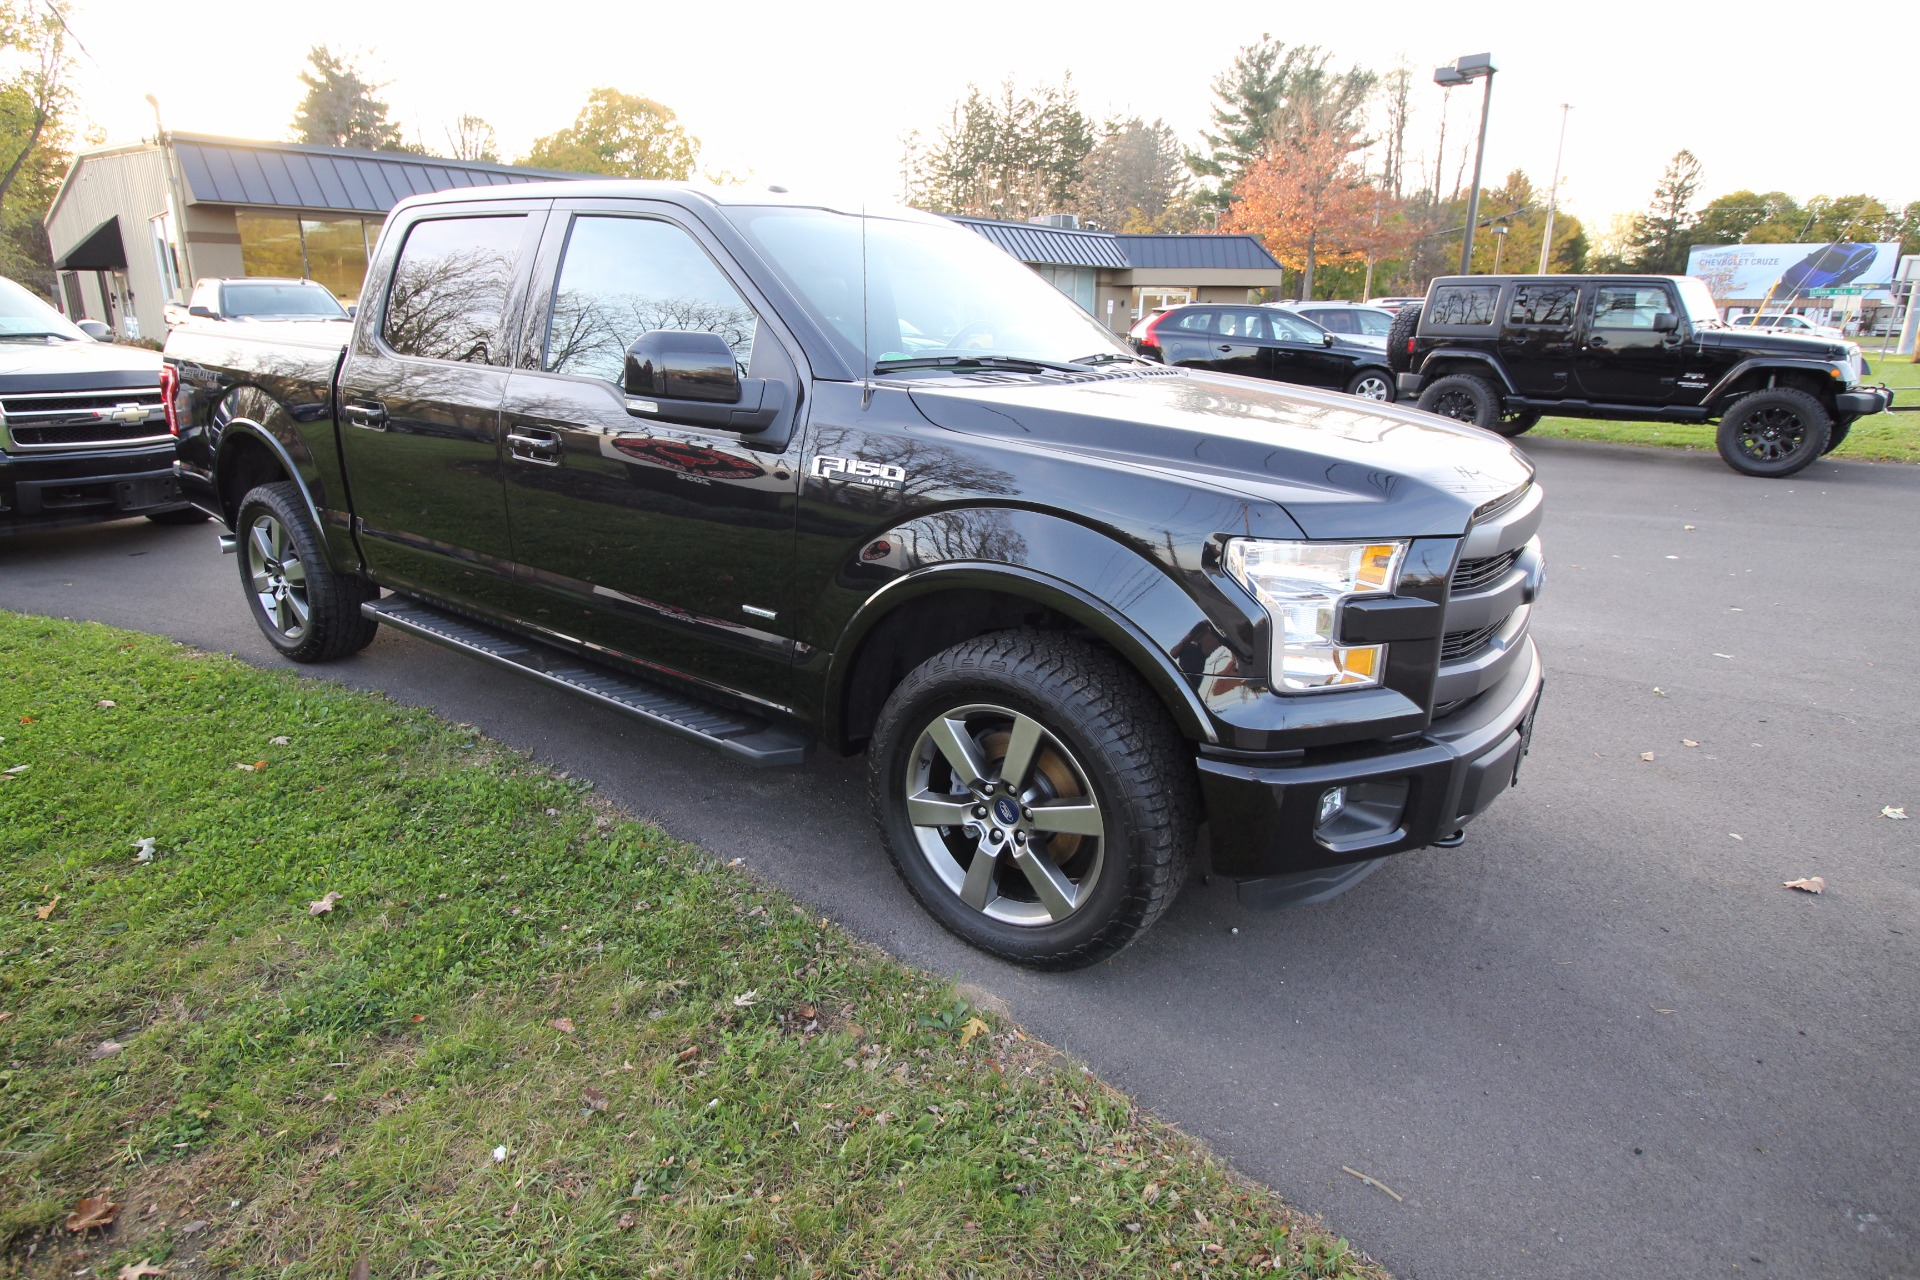 Used Ford F 150 For Sale In Rochester Ny: 2015 Ford F-150 Lariat SuperCrew 5.5-ft. Bed 4WD Stock